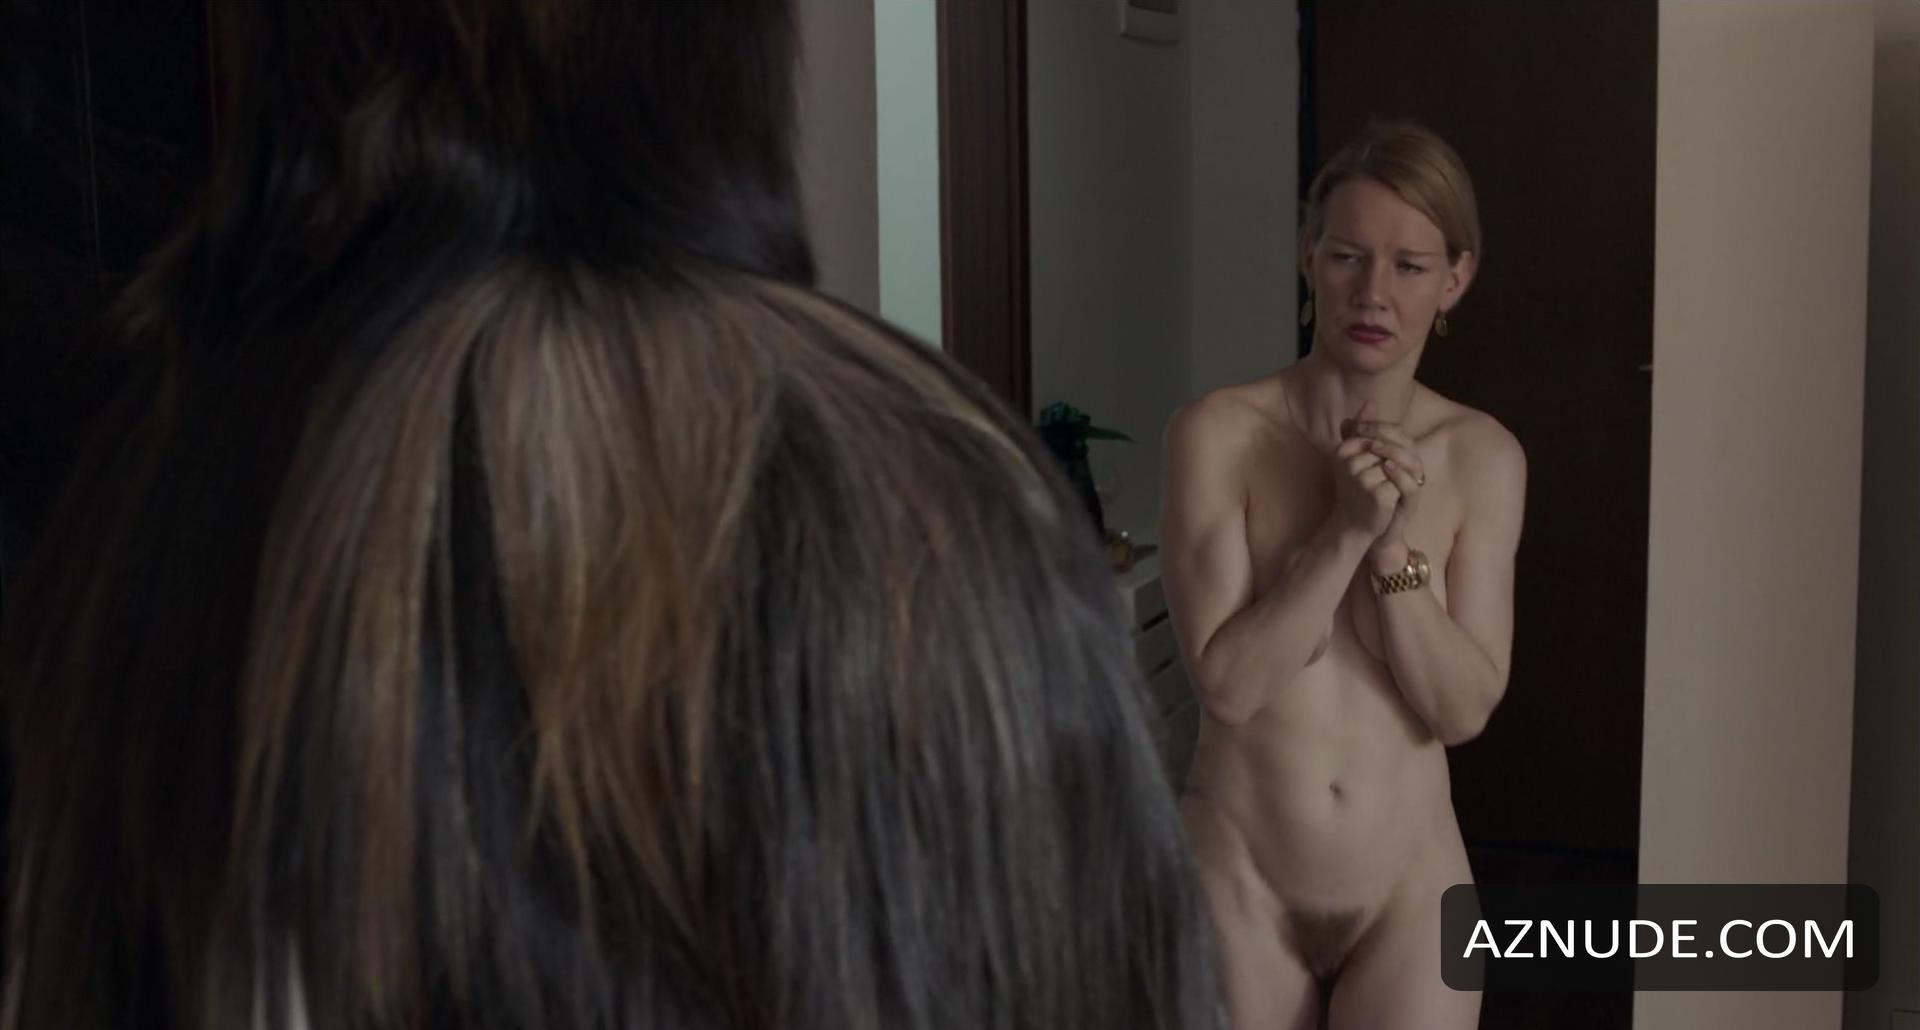 image Lesbian scene from movie sociopath